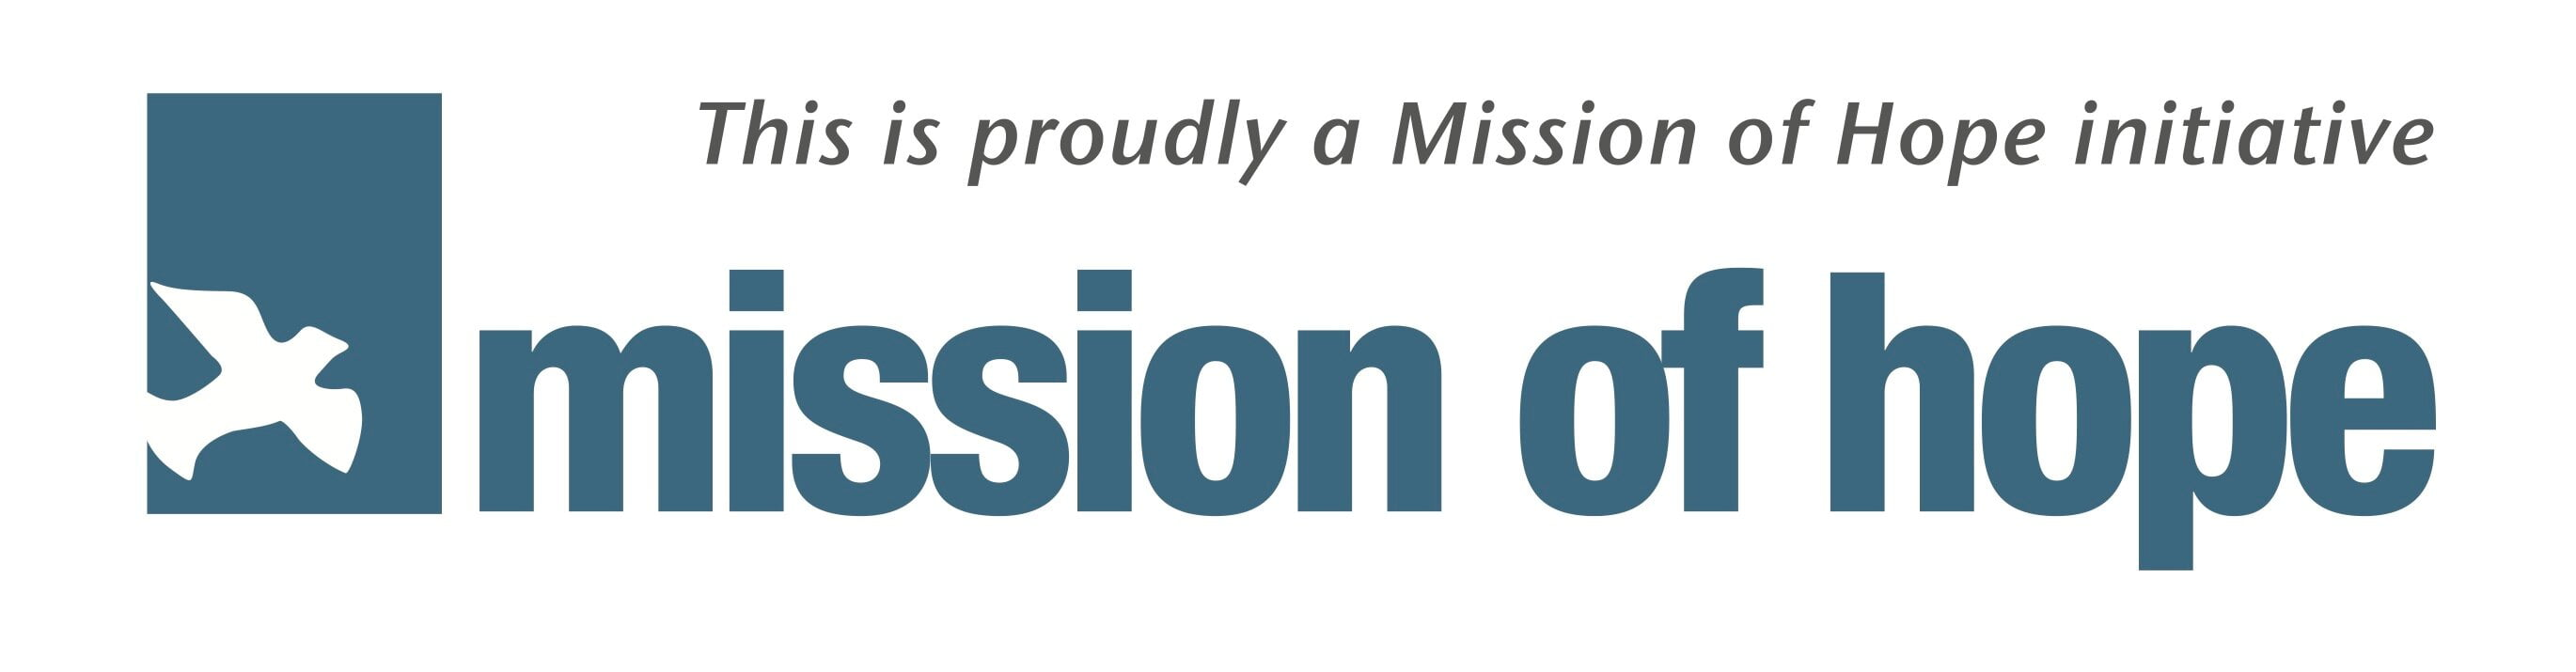 mission-of-hope-large-banner